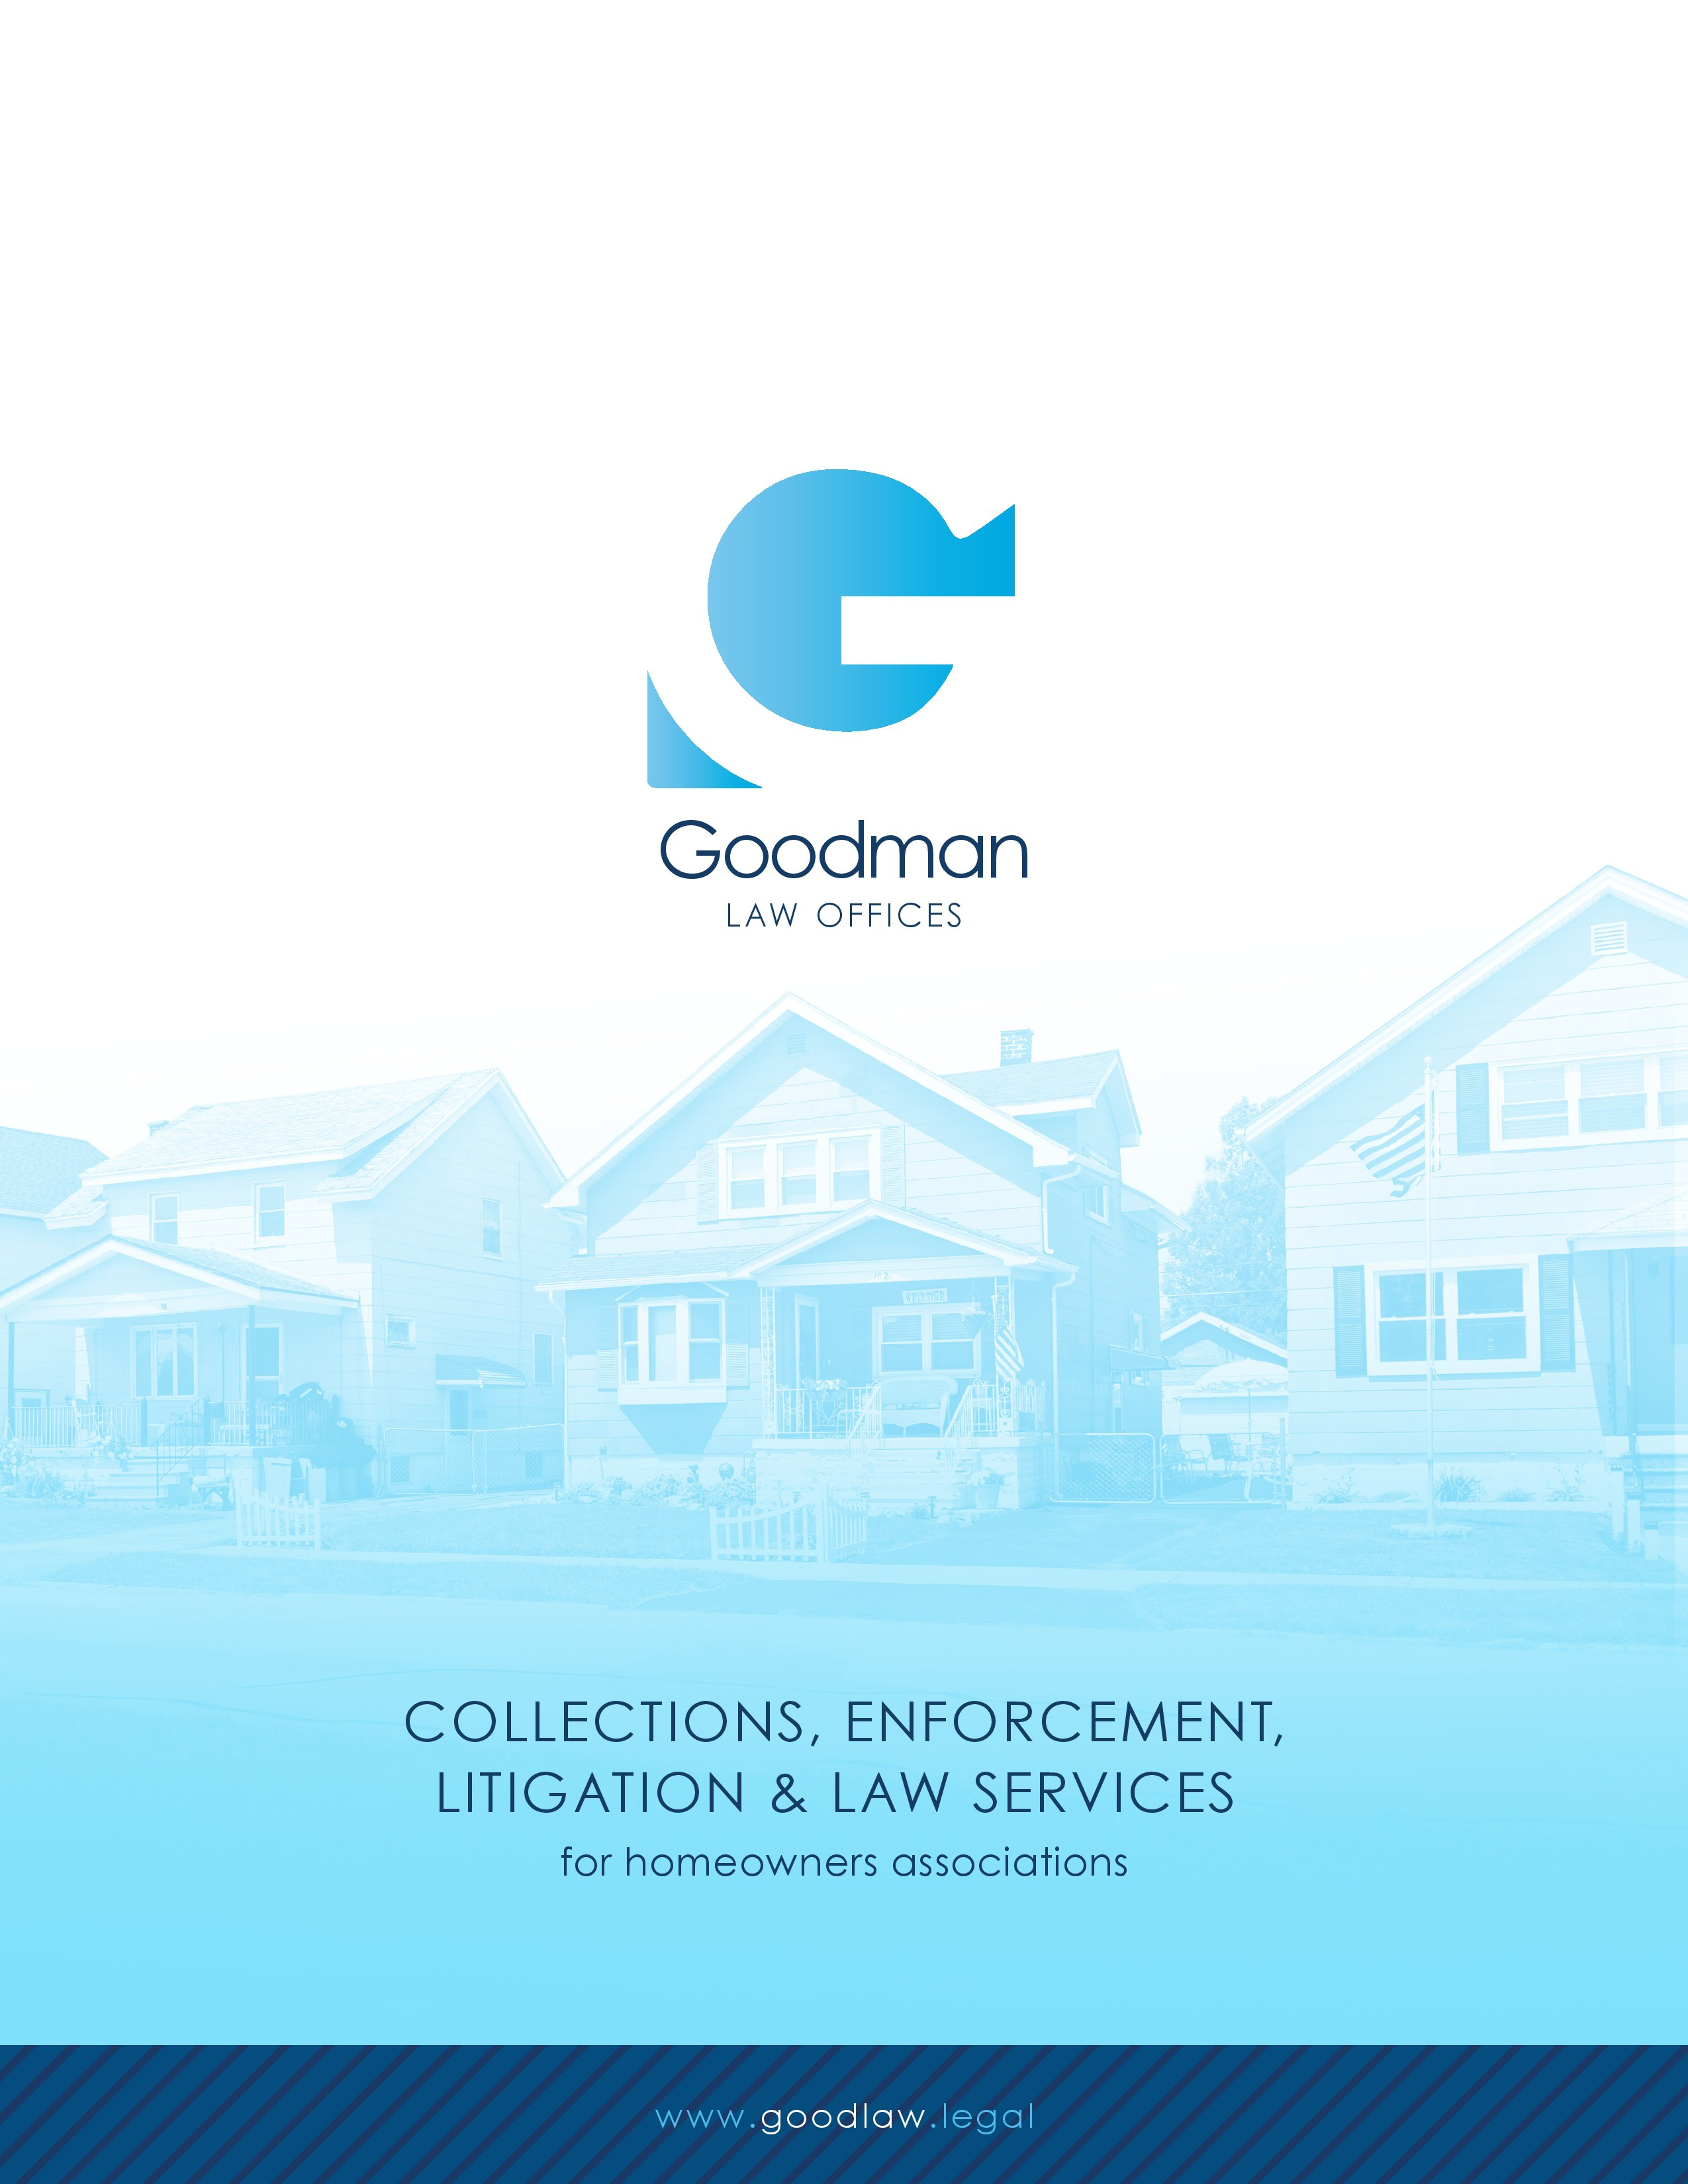 PDF (online) brochure for a law firm to email to prospective clients